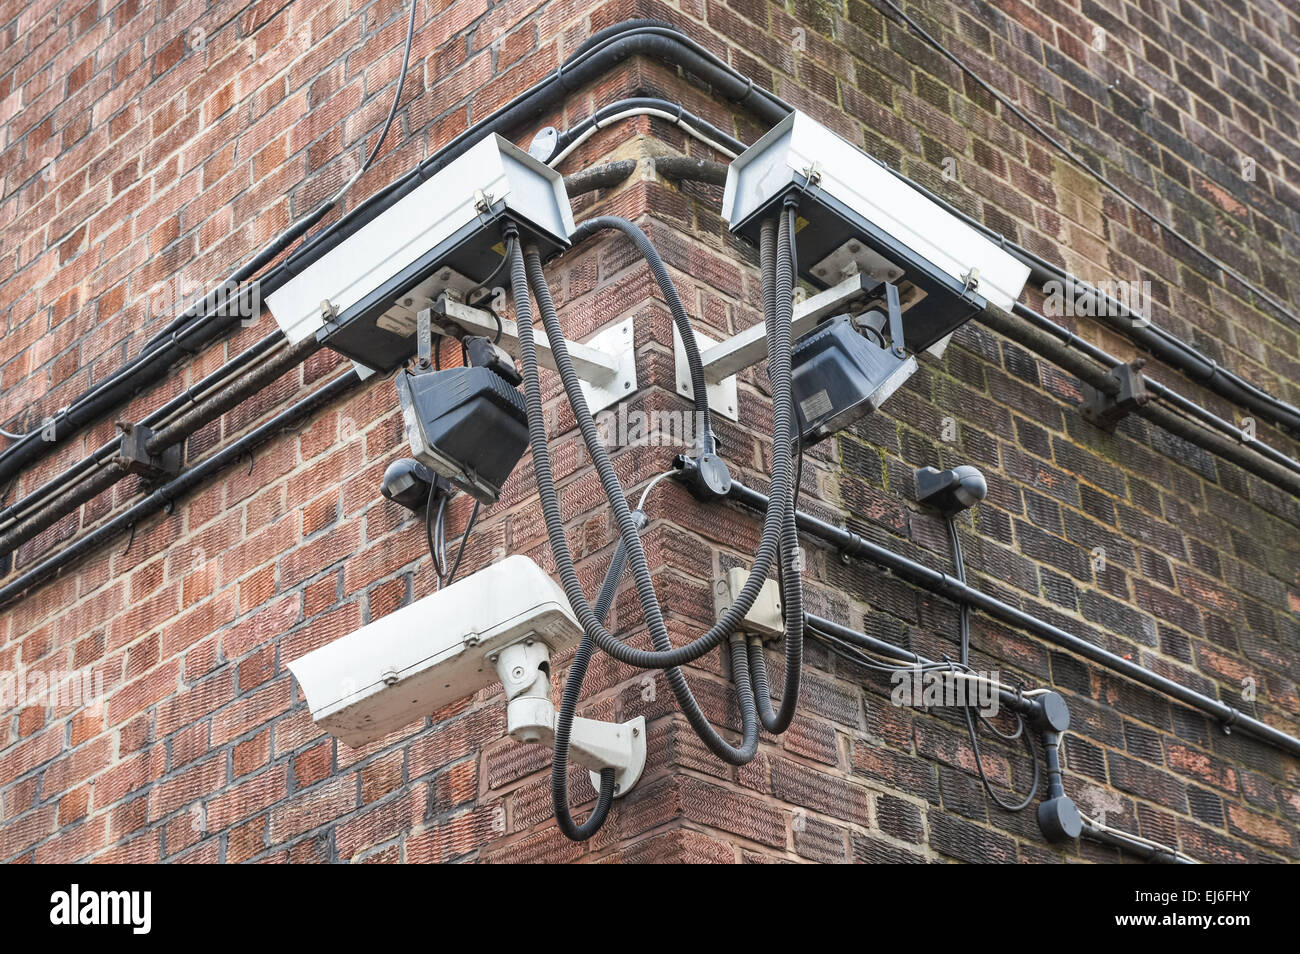 CCTV security cameras mounted on a brick building, London England United Kingdom UK Stock Photo